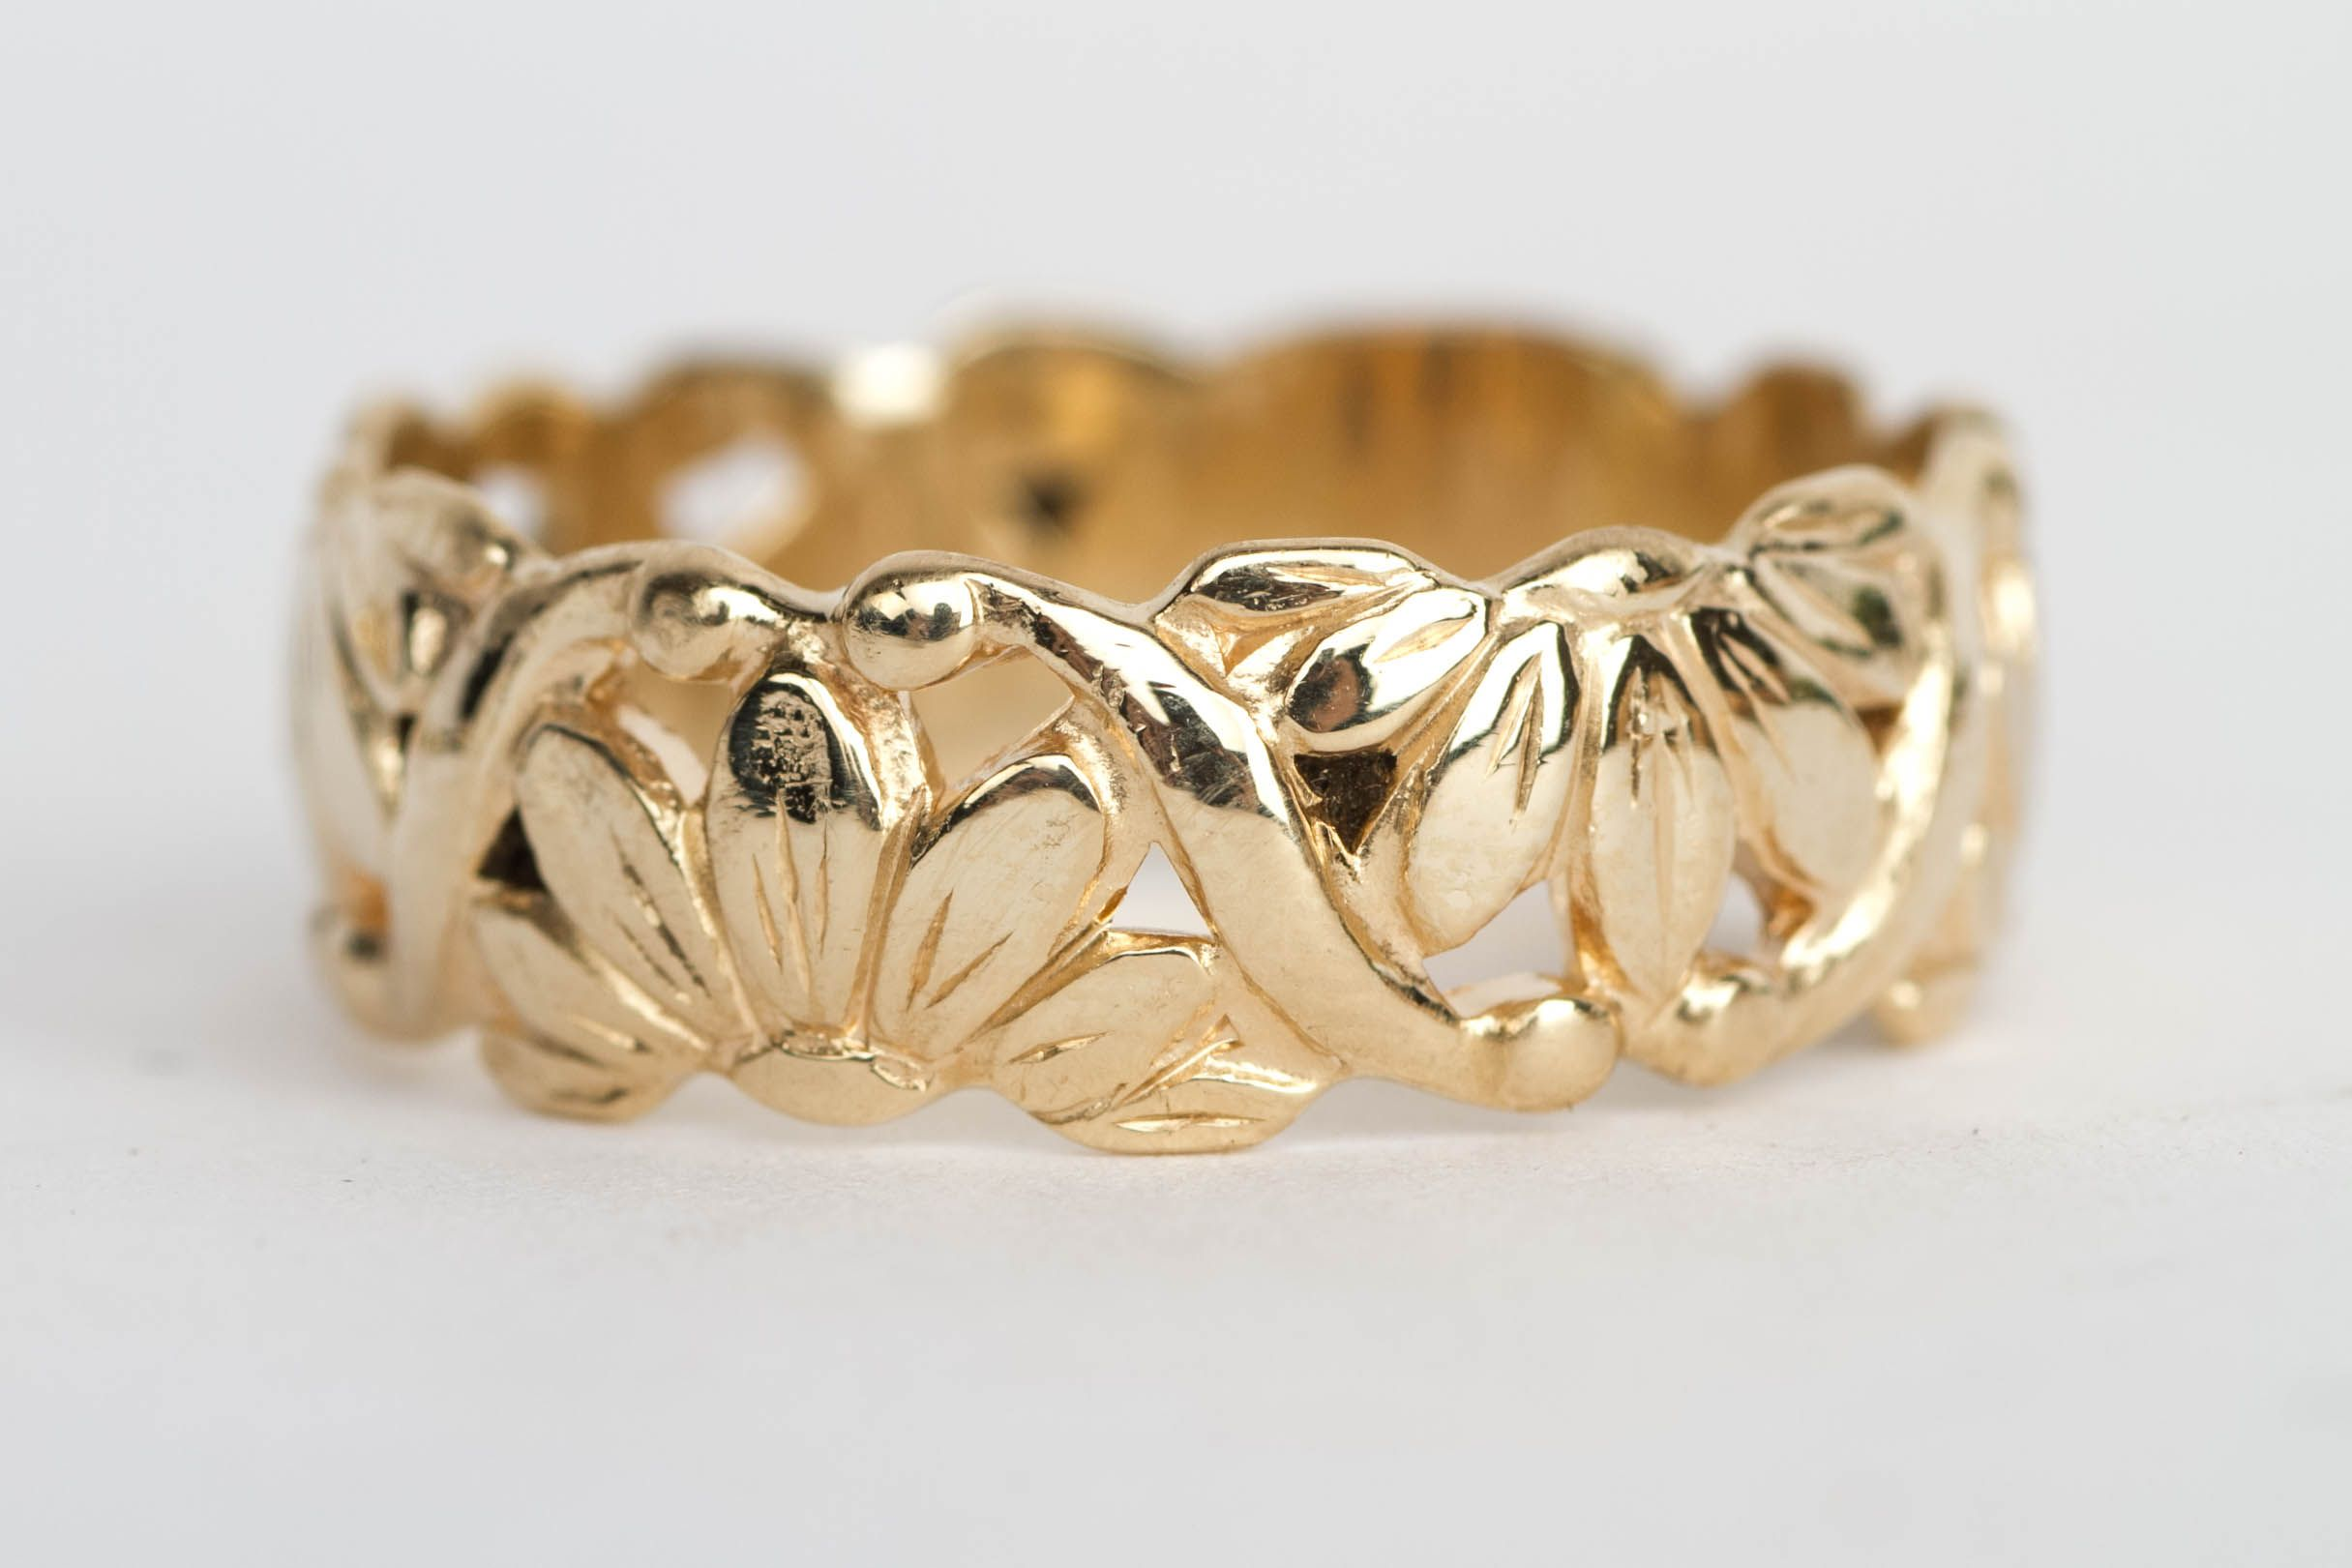 What a beautiful band! It was made by ArtCarved. It has